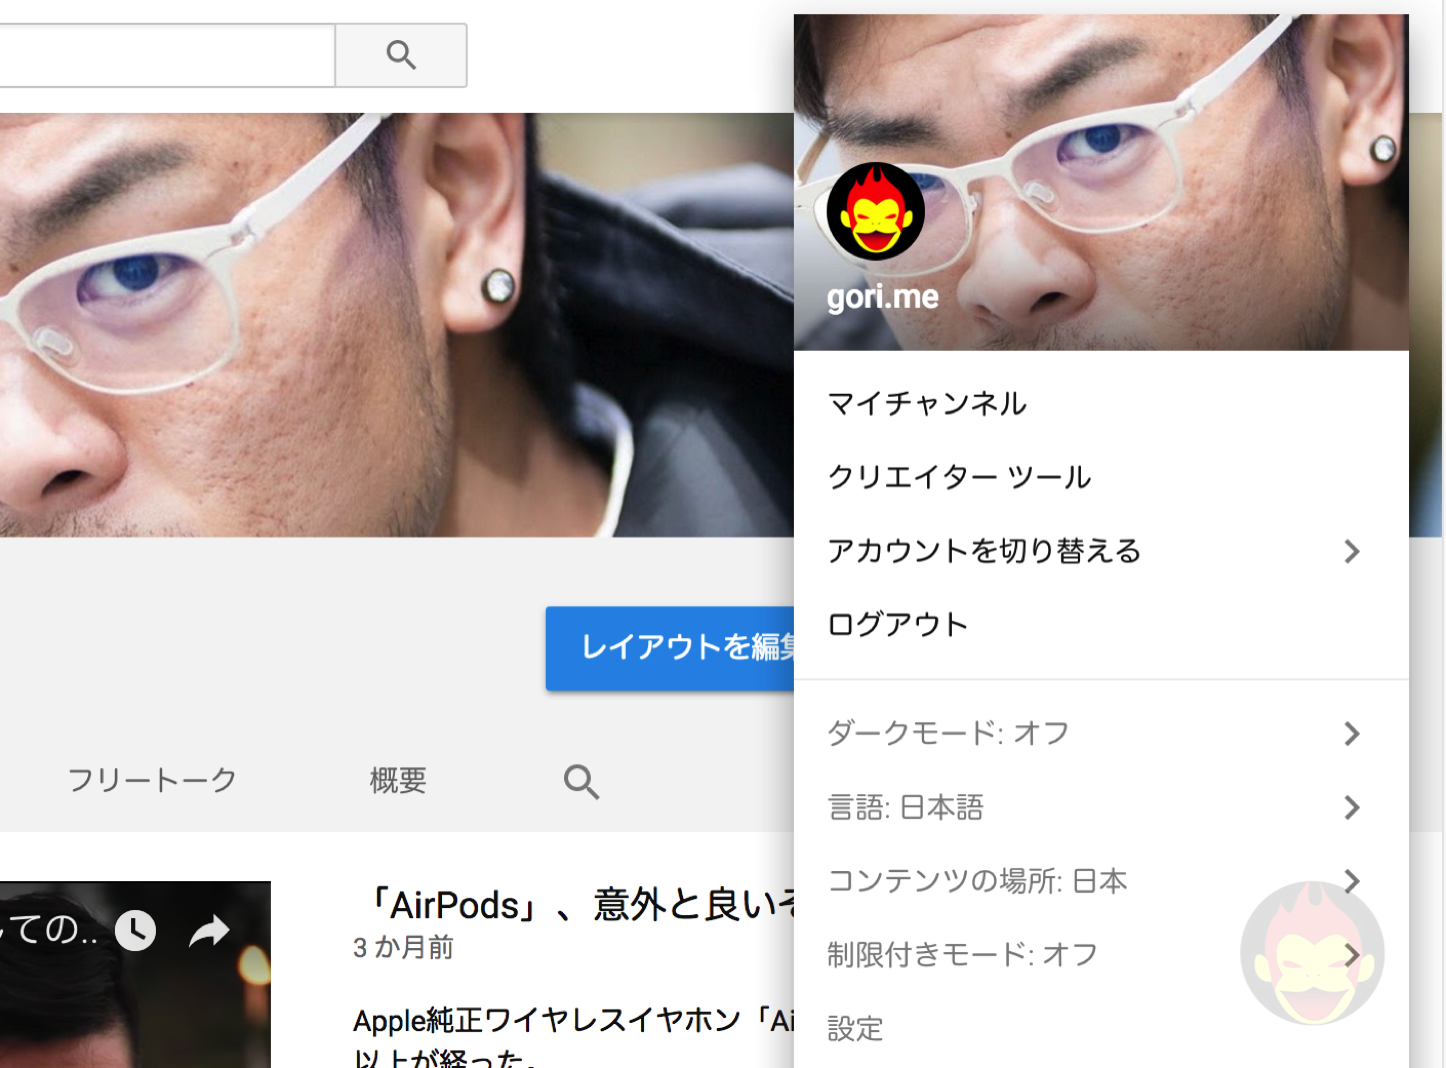 YouTube-Jap-to-Eng-01.png